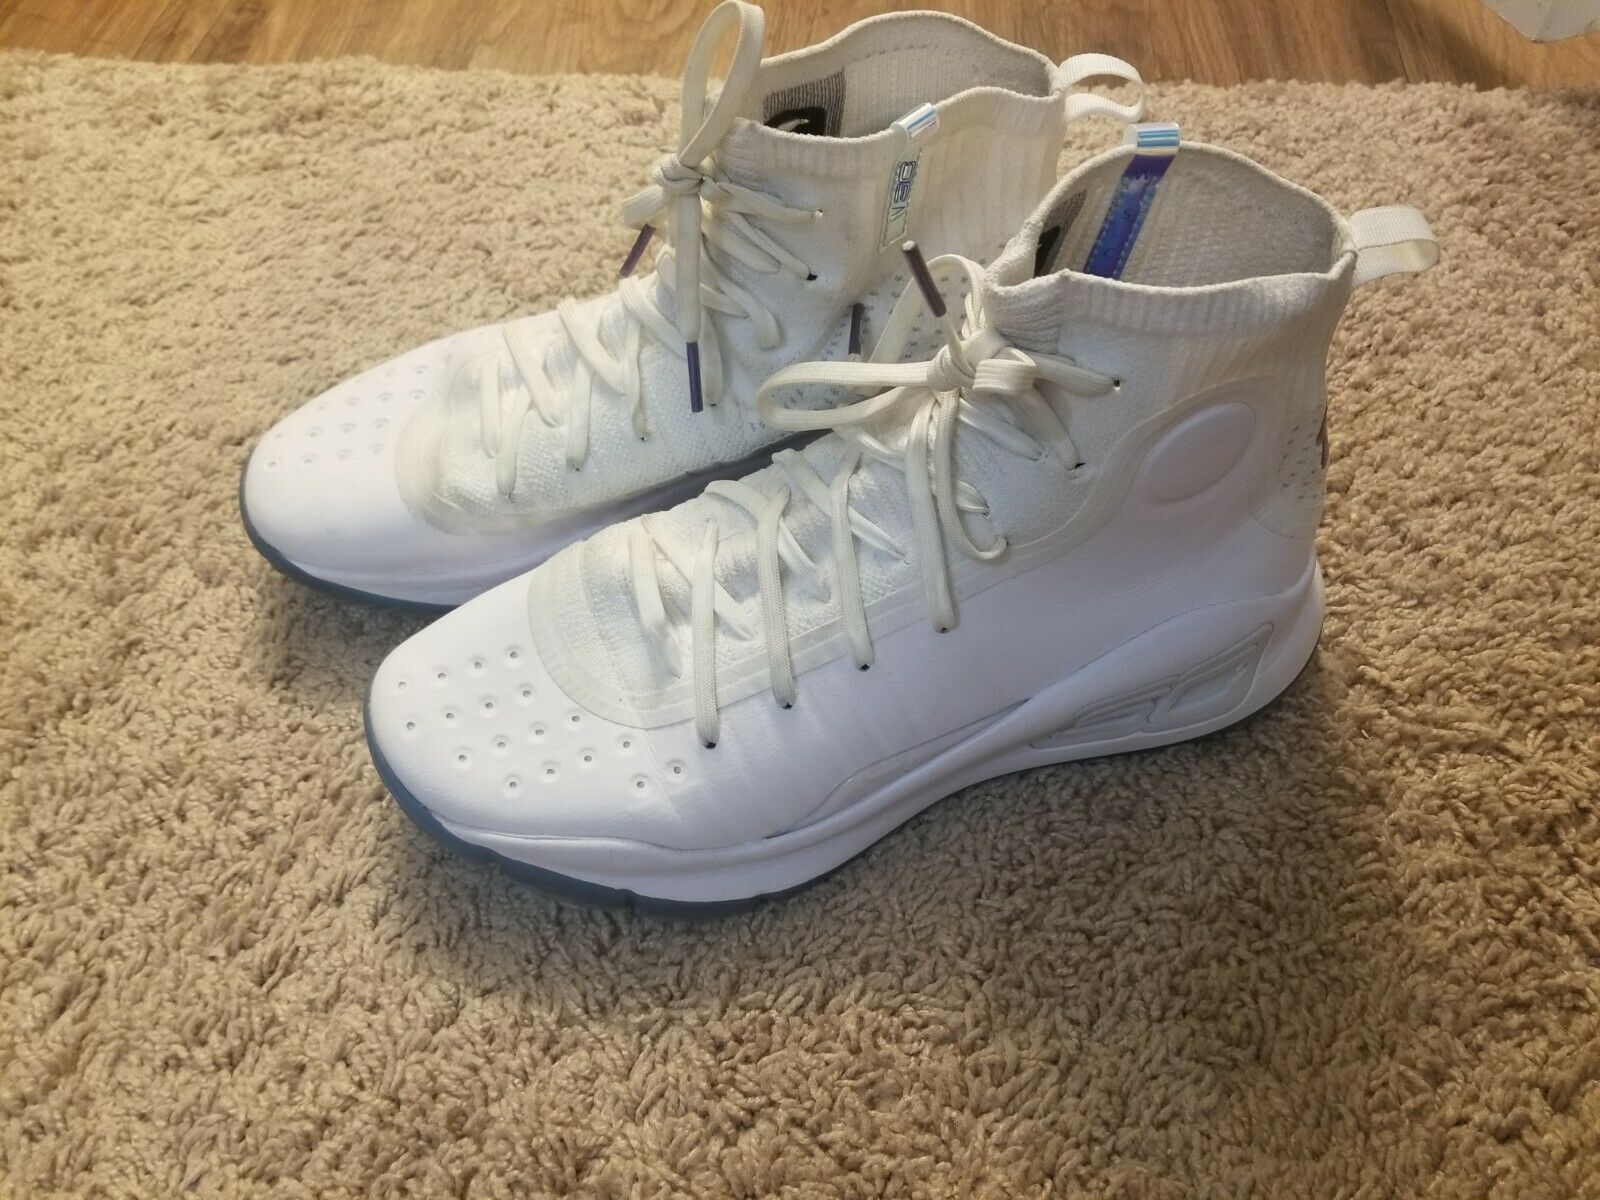 Mens 9.5 UA Steph Curry 4 All Star Basketball shoes White bluee Limited Edition